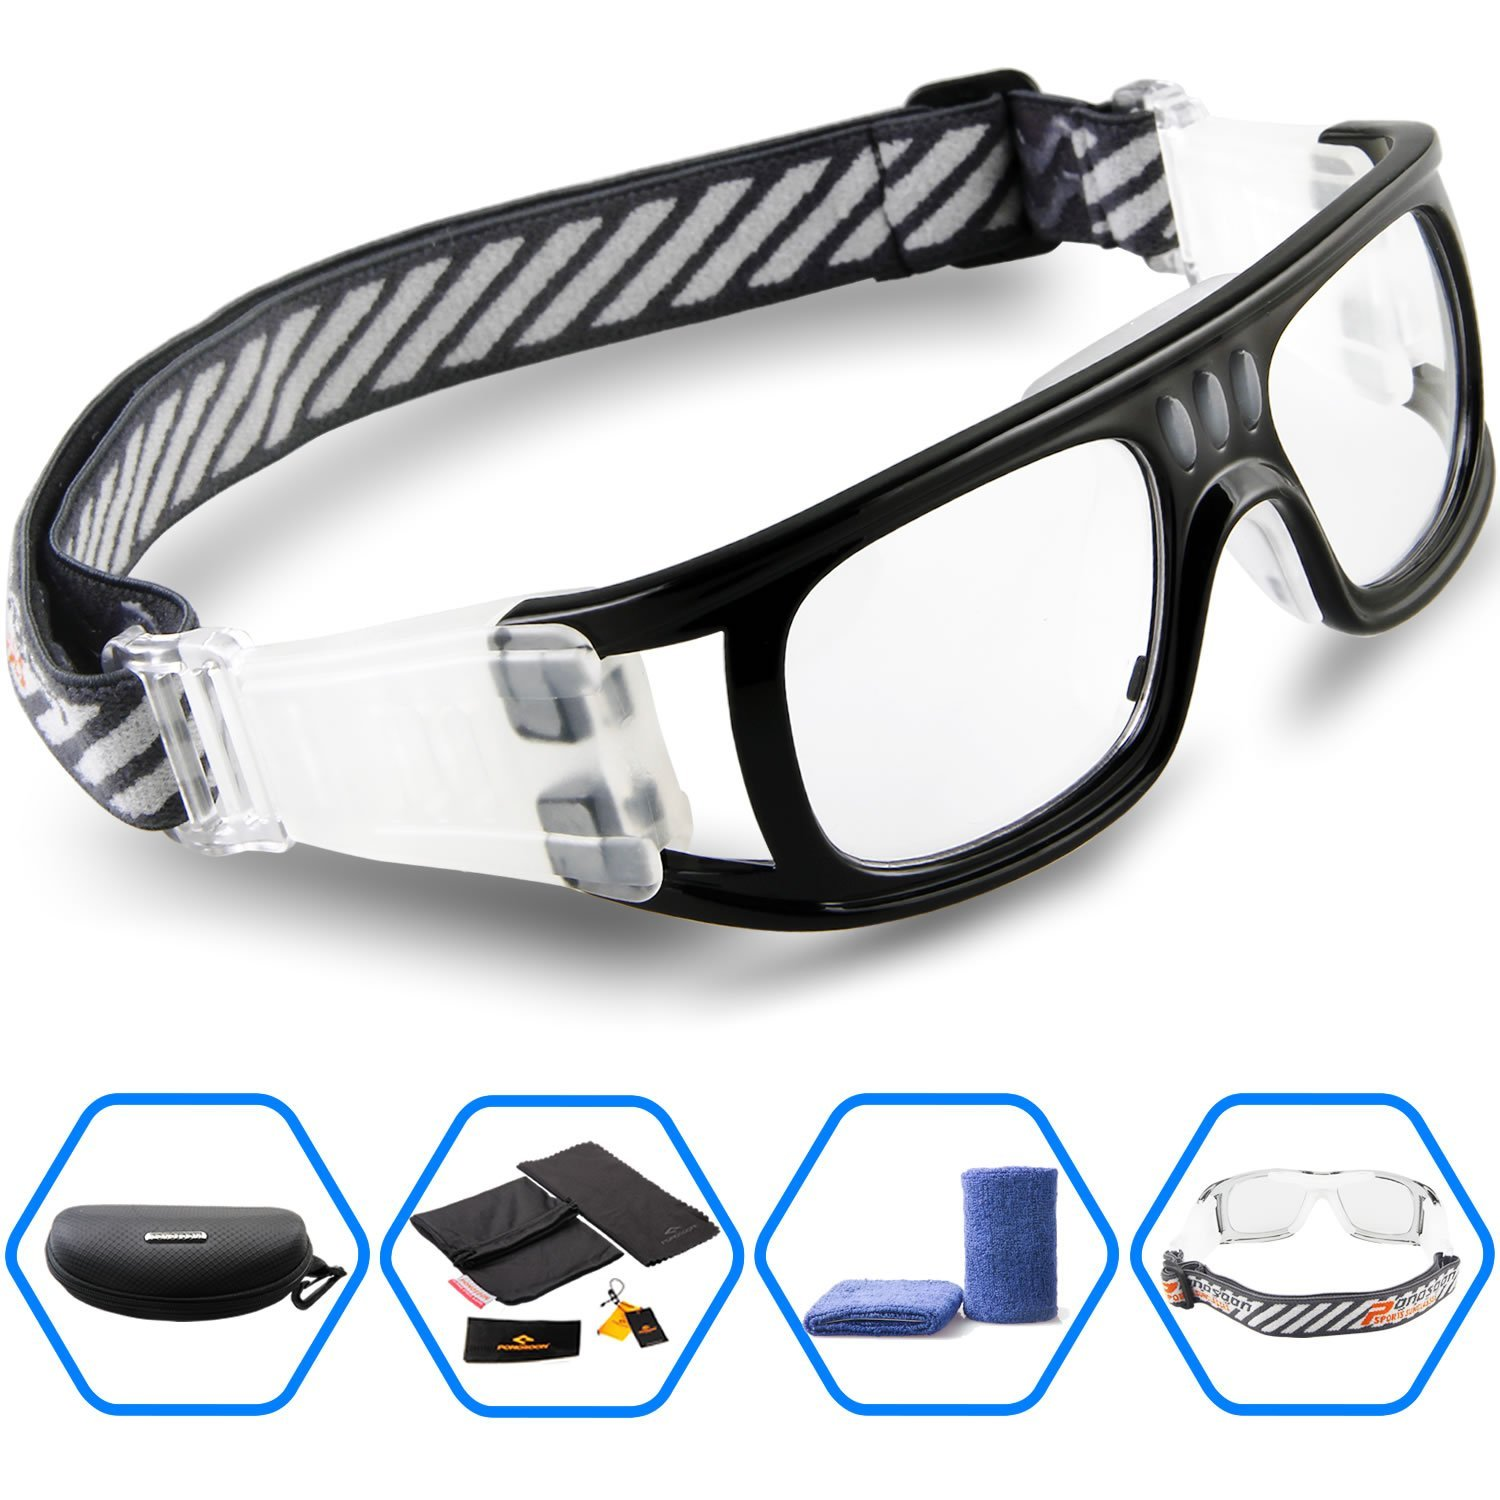 0ef8d92b4e Basketball Goggles  Top 10 Most Popular Basketball Goggles of 2017